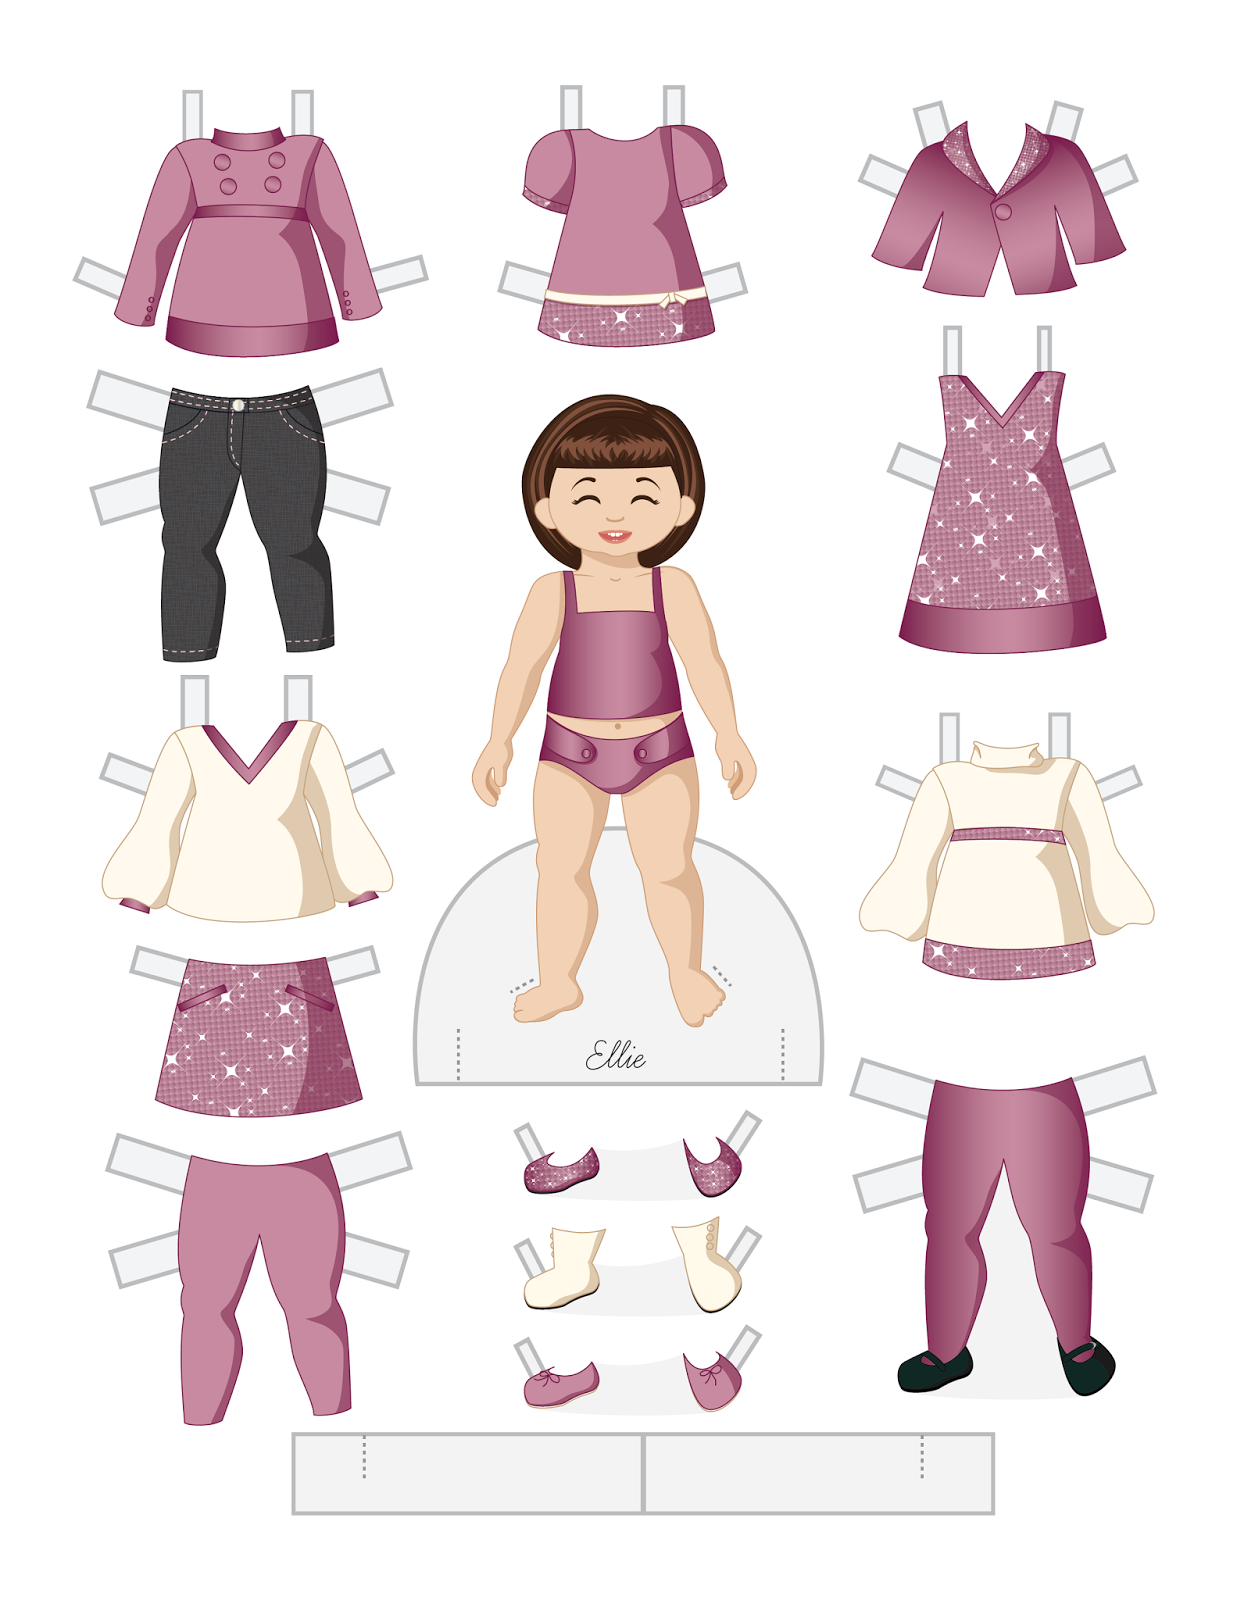 toddler fashion friday ellie by julie matthews from paper doll